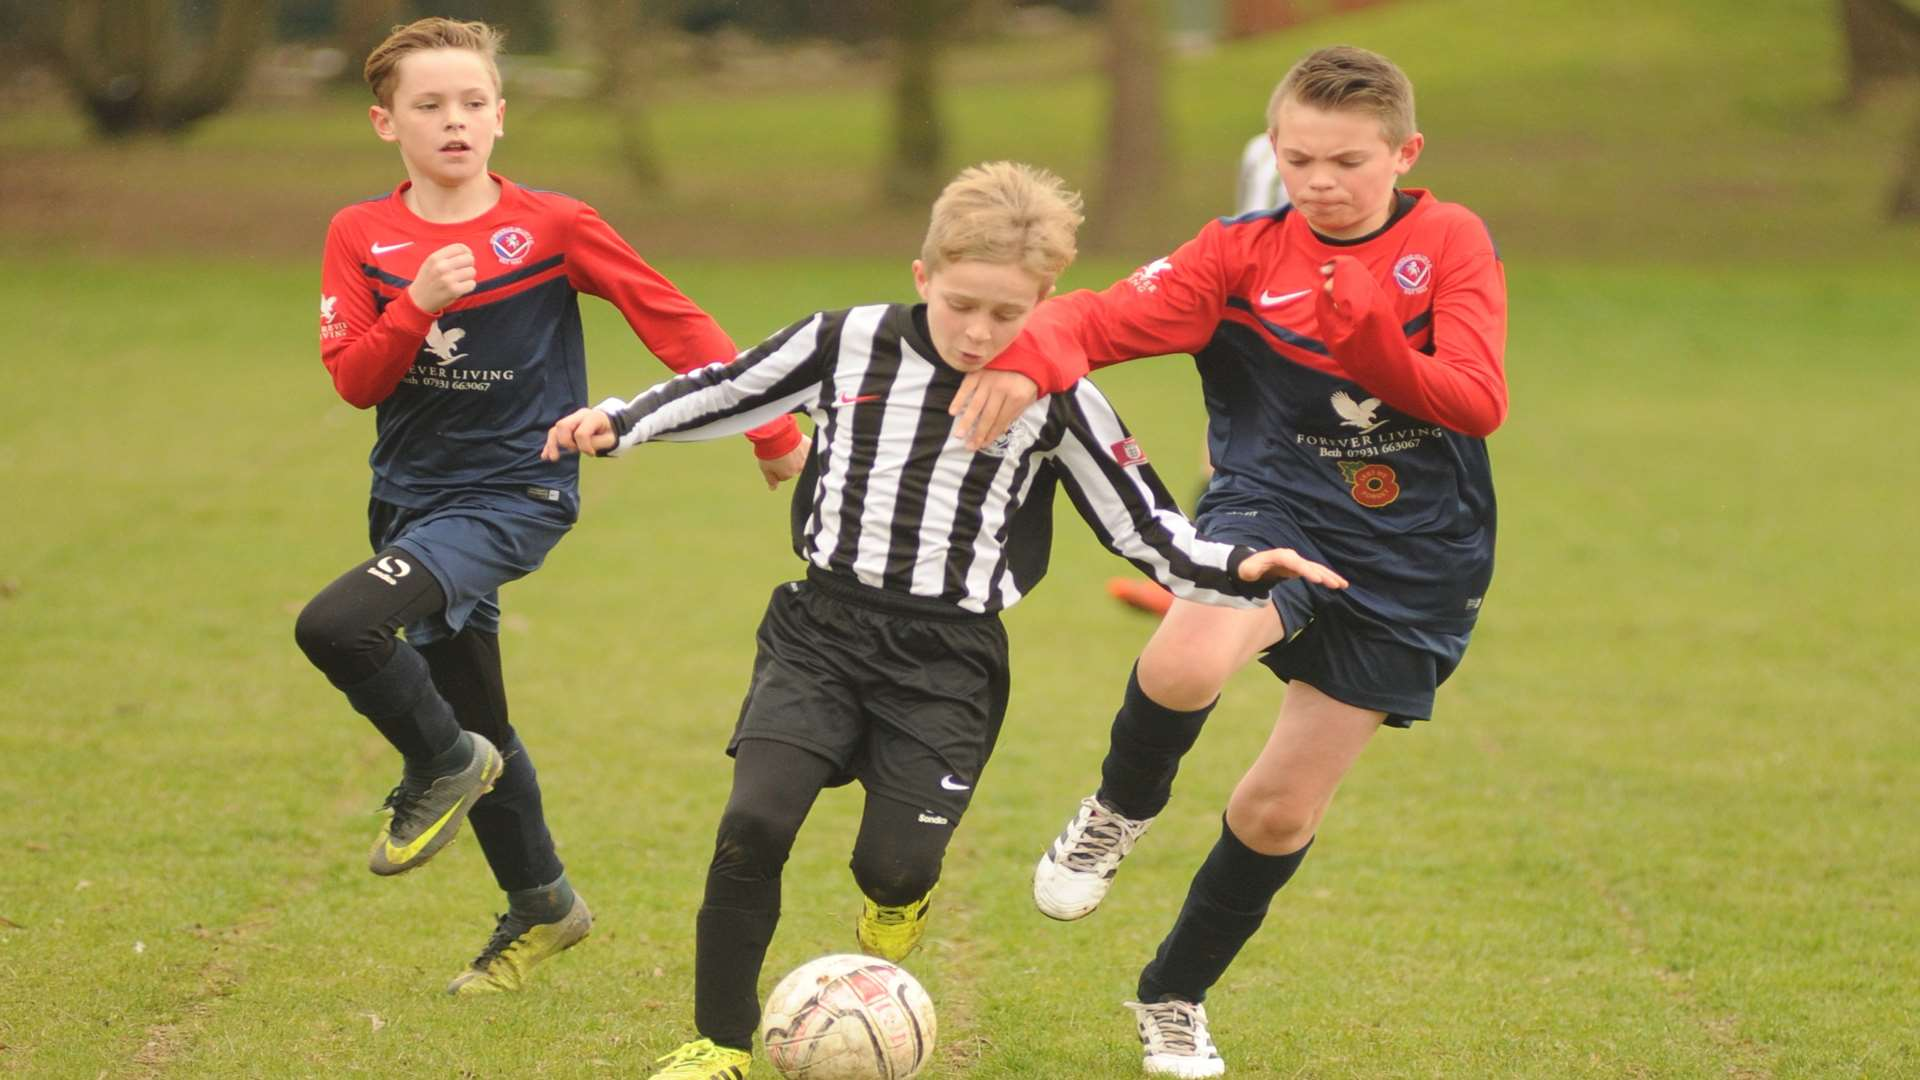 Milton & Fulston United under-11s find a gap against Hempstead Valley Rangers Picture: Steve Crispe